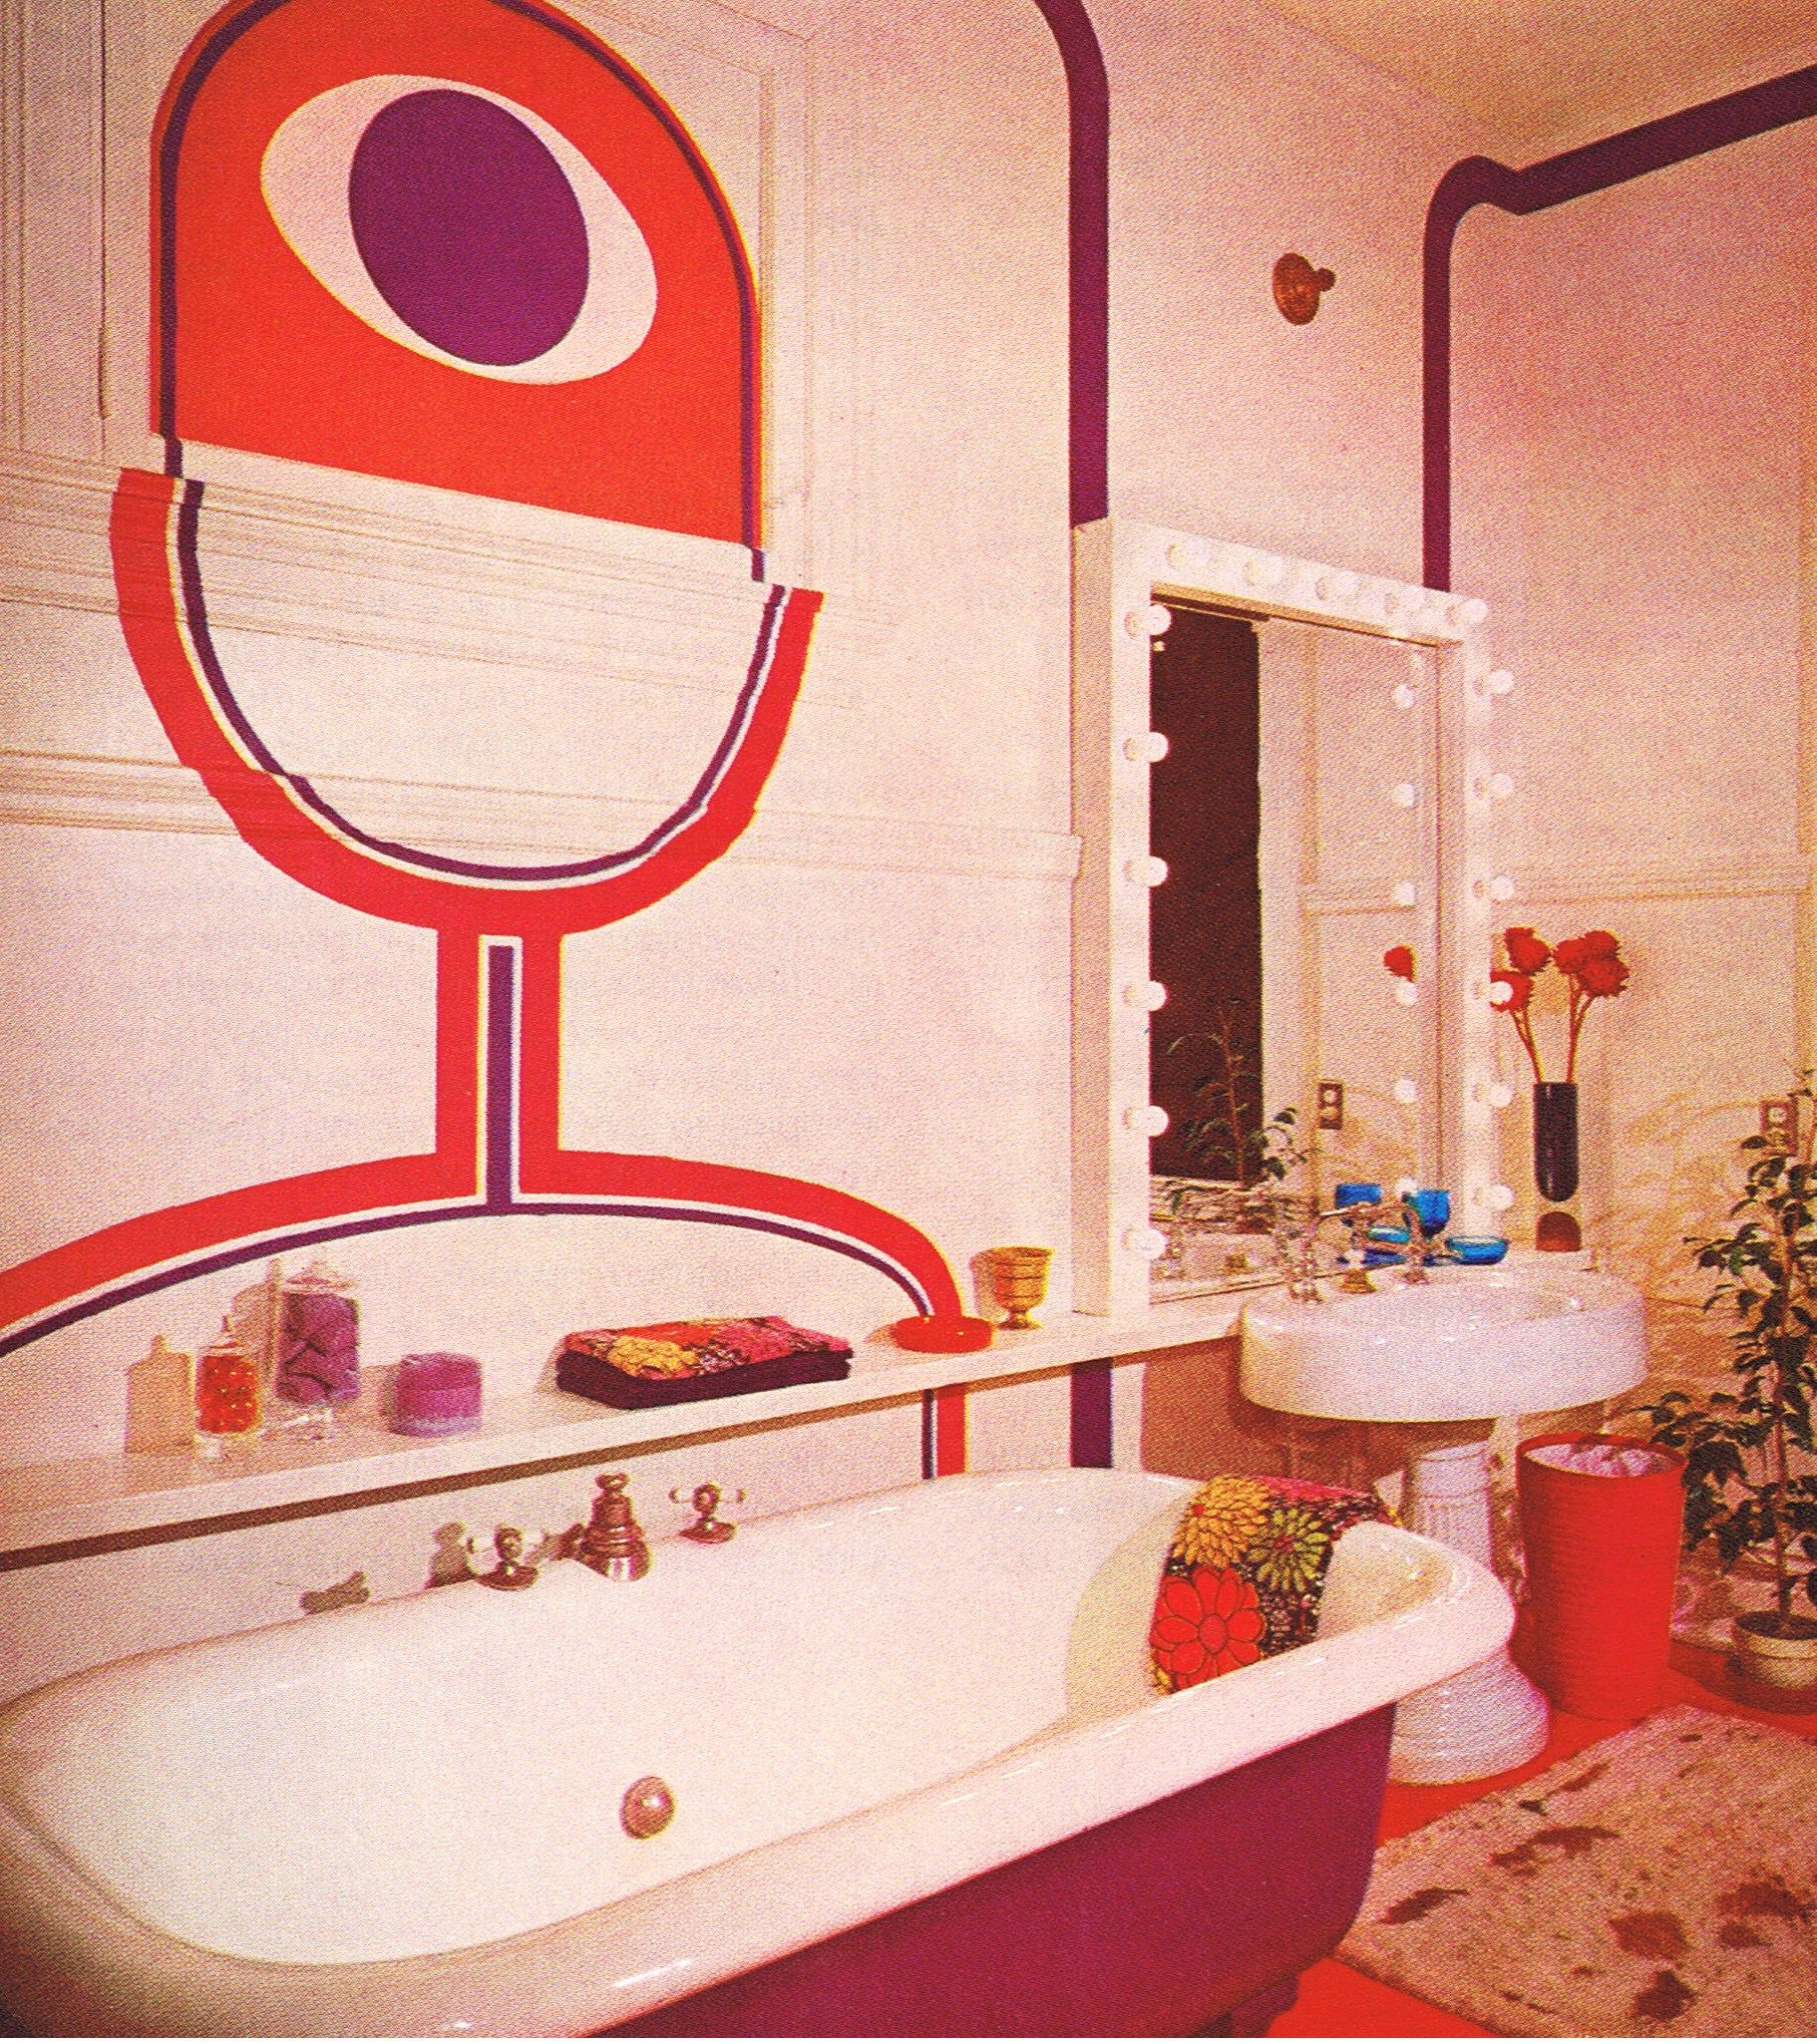 Better Homes And Gardens Bathrooms 1973 bathroom, better homes & gardens | mid century modern